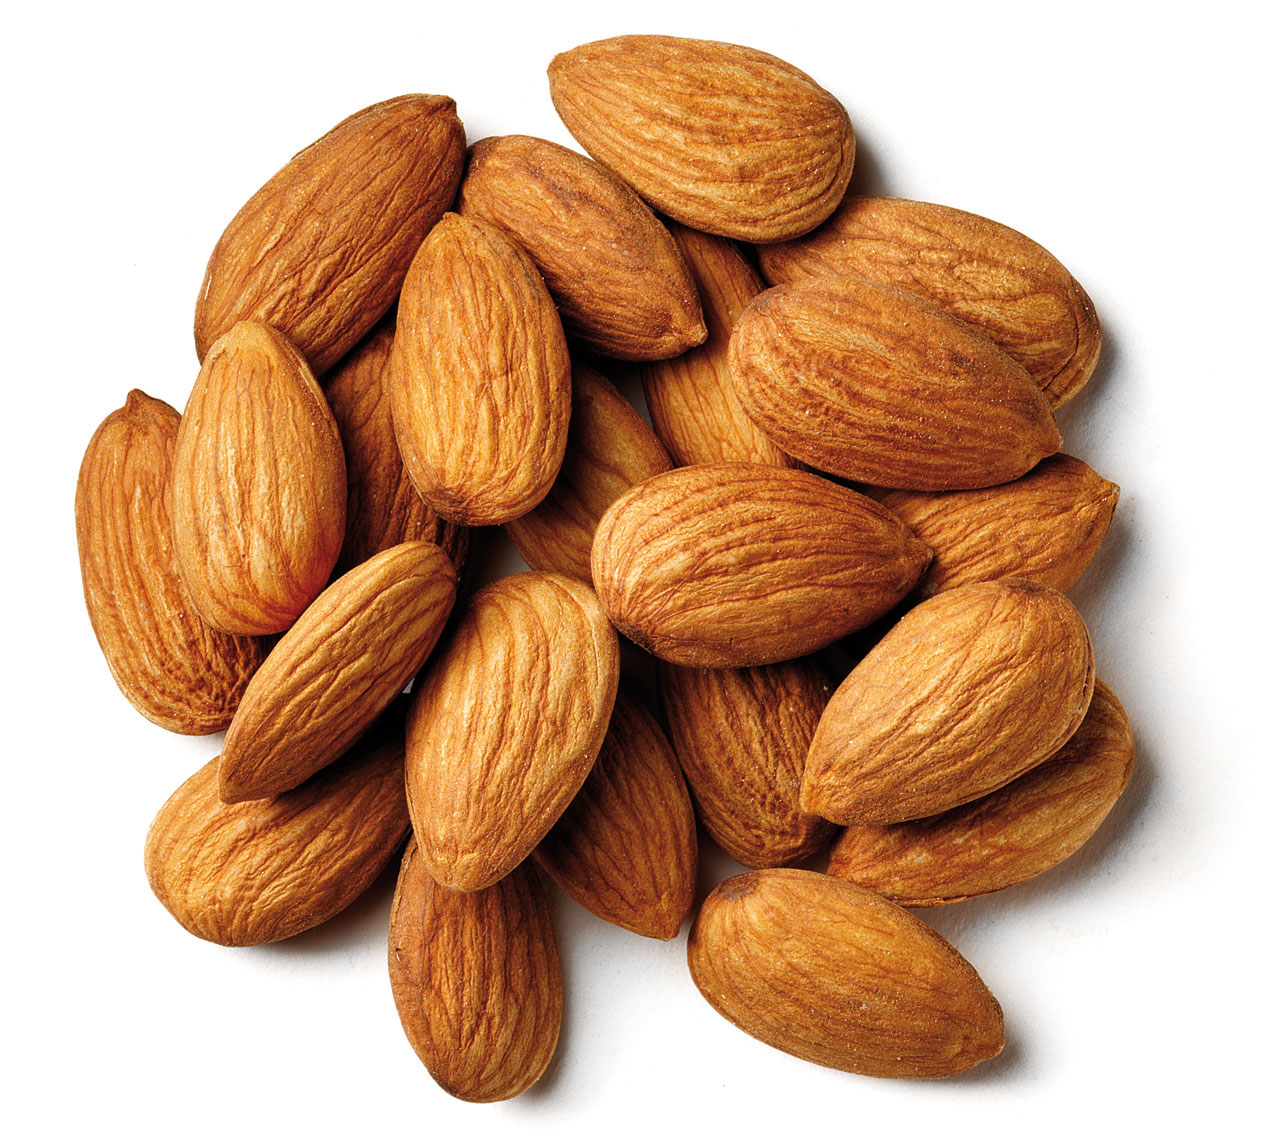 HD Quality Wallpaper   Collection: Food, 1264x1144 Almond